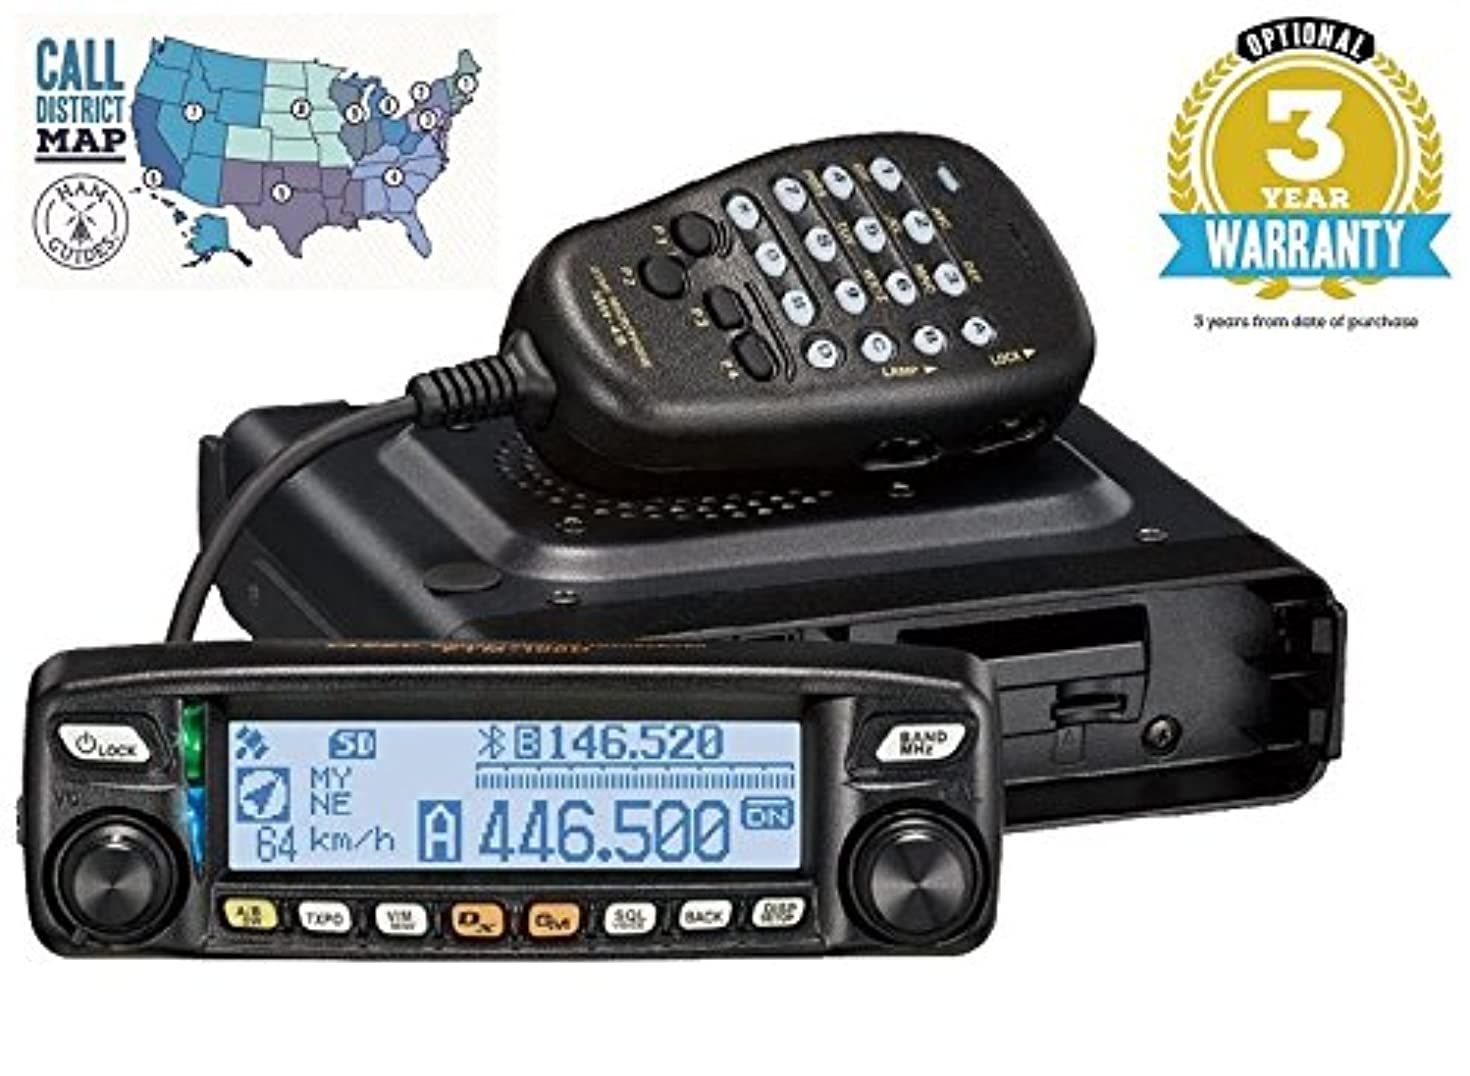 Yaesu FTM-100DR VHF/UHF 50W Mobile Transceiver W/ 3 Year Warranty and Ham Guides TM Pocket Reference Card!!